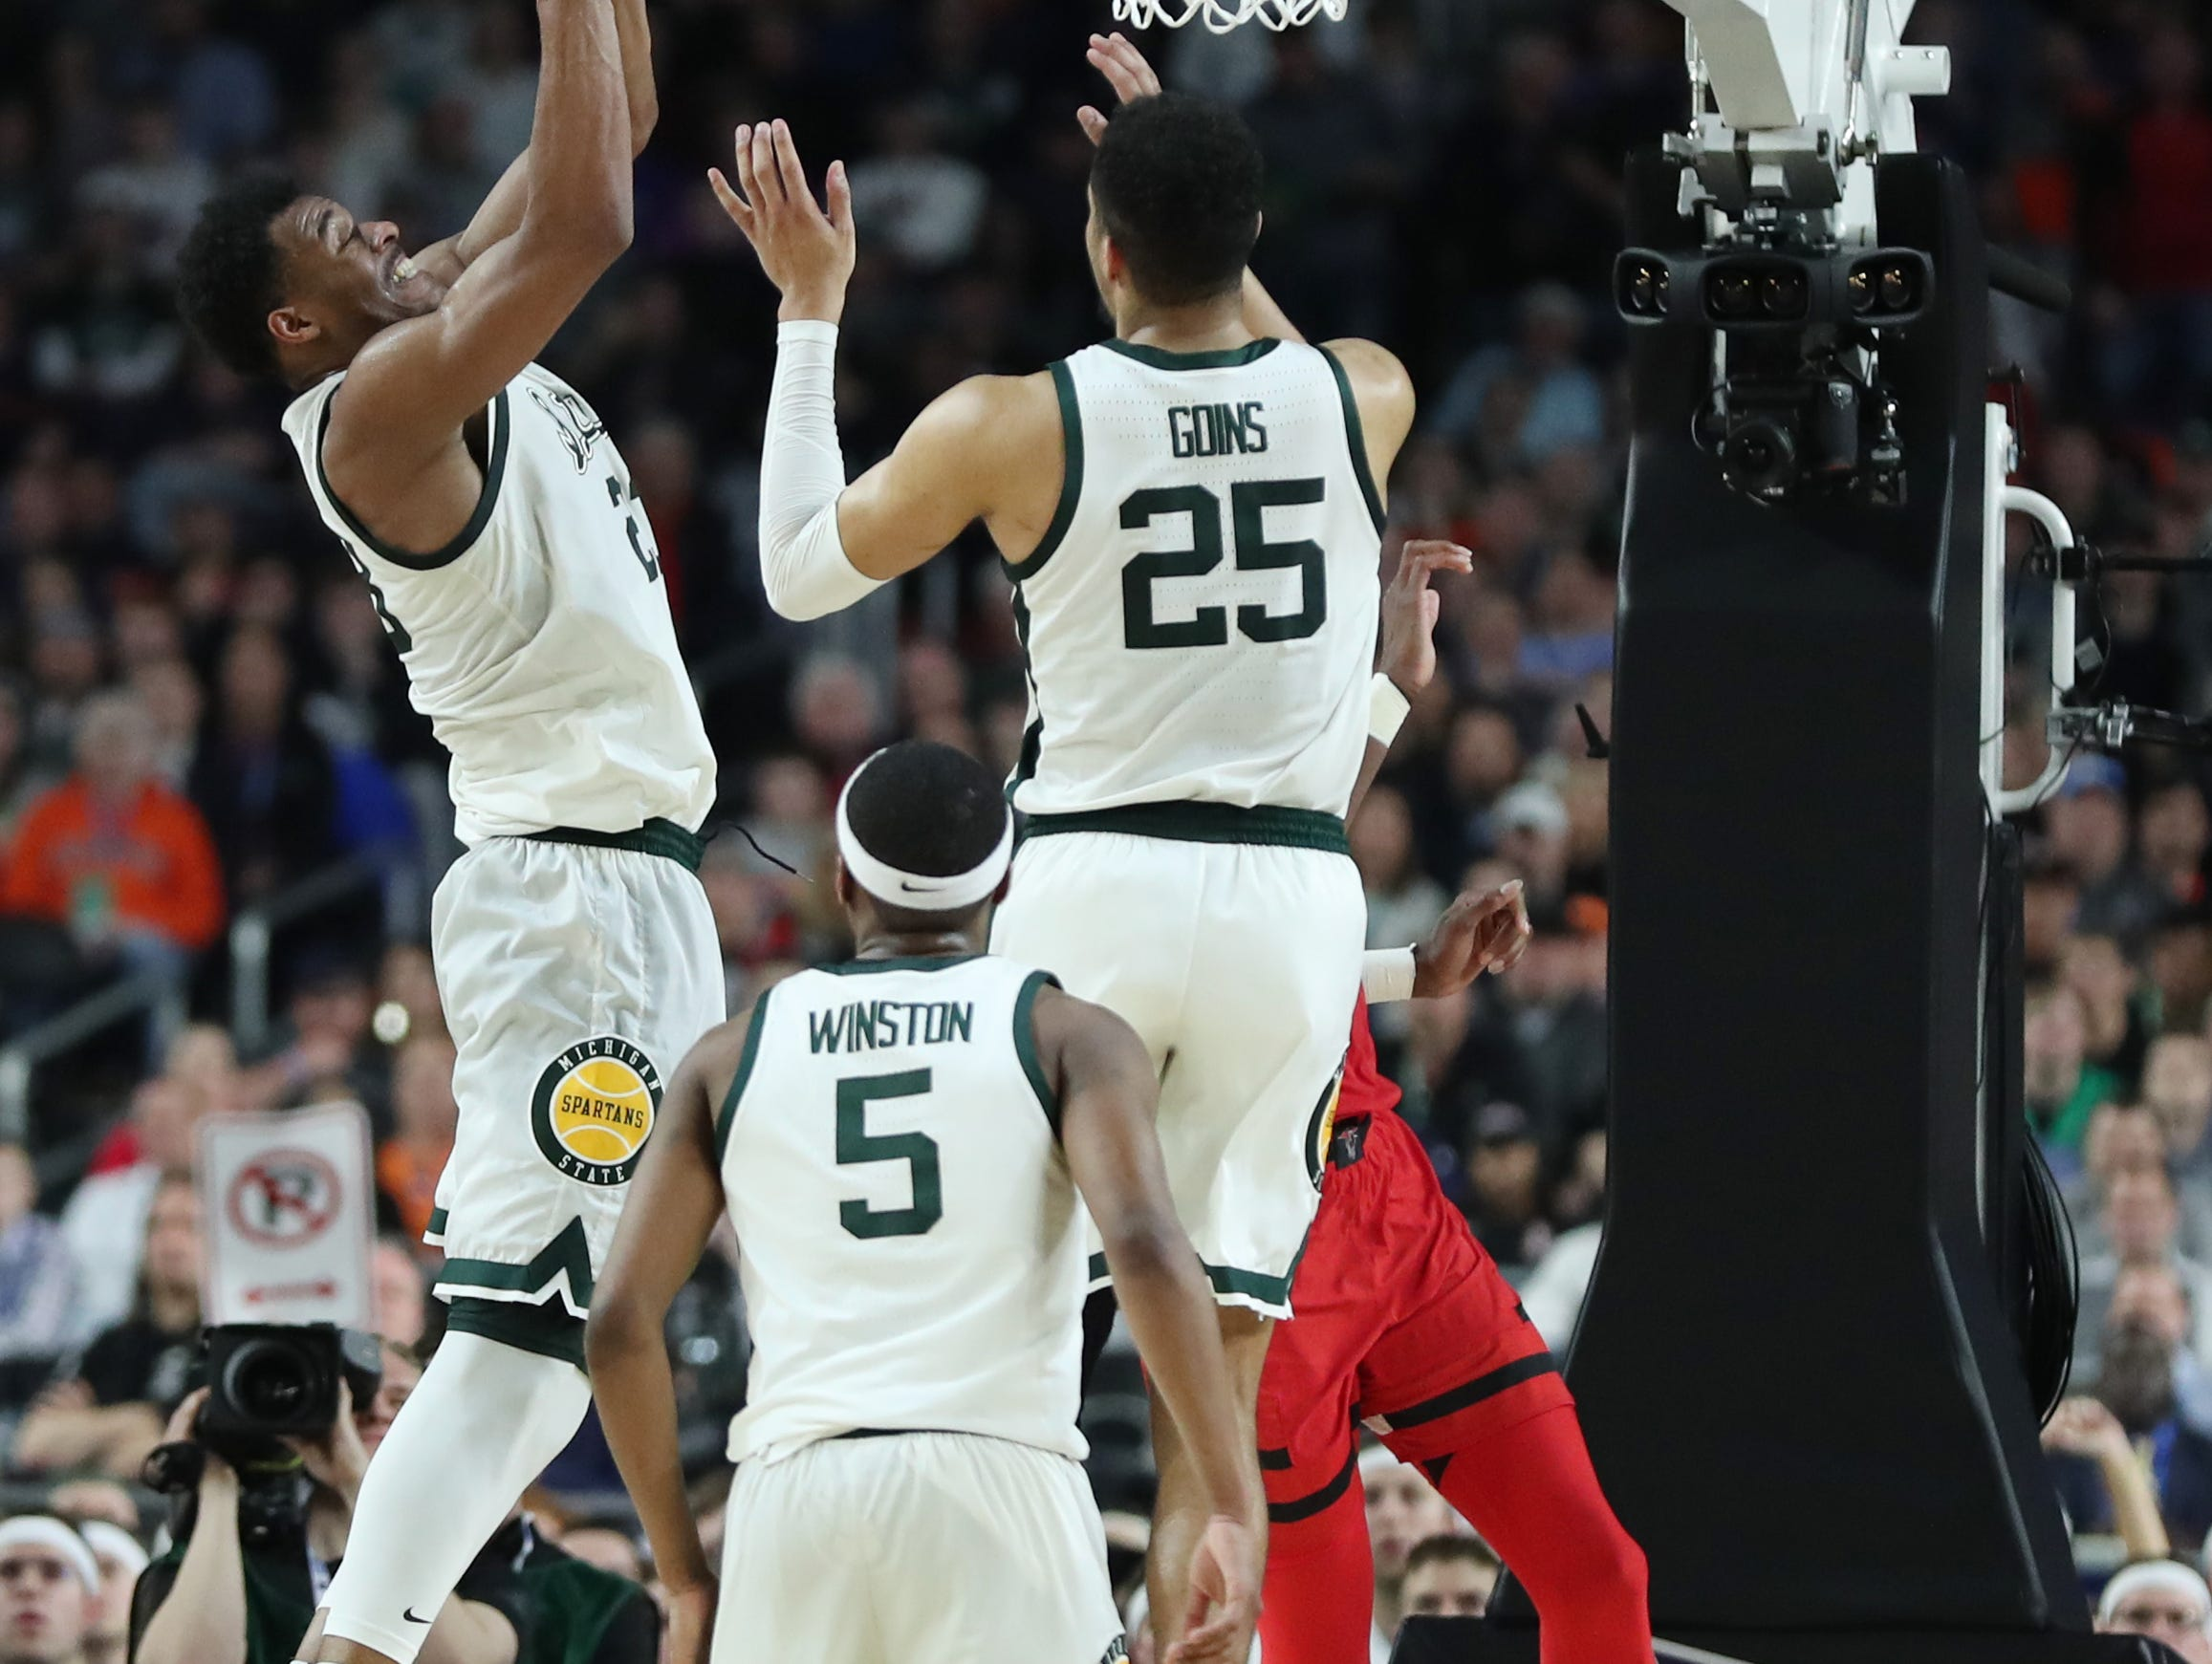 Michigan State forward Xavier Tillman (23) grabs a rebound over Texas Tech in the first half of the Spartan's Final Four game at U.S. Bank Stadium in Minneapolis, Minnesota on Saturday, April 06, 2019.